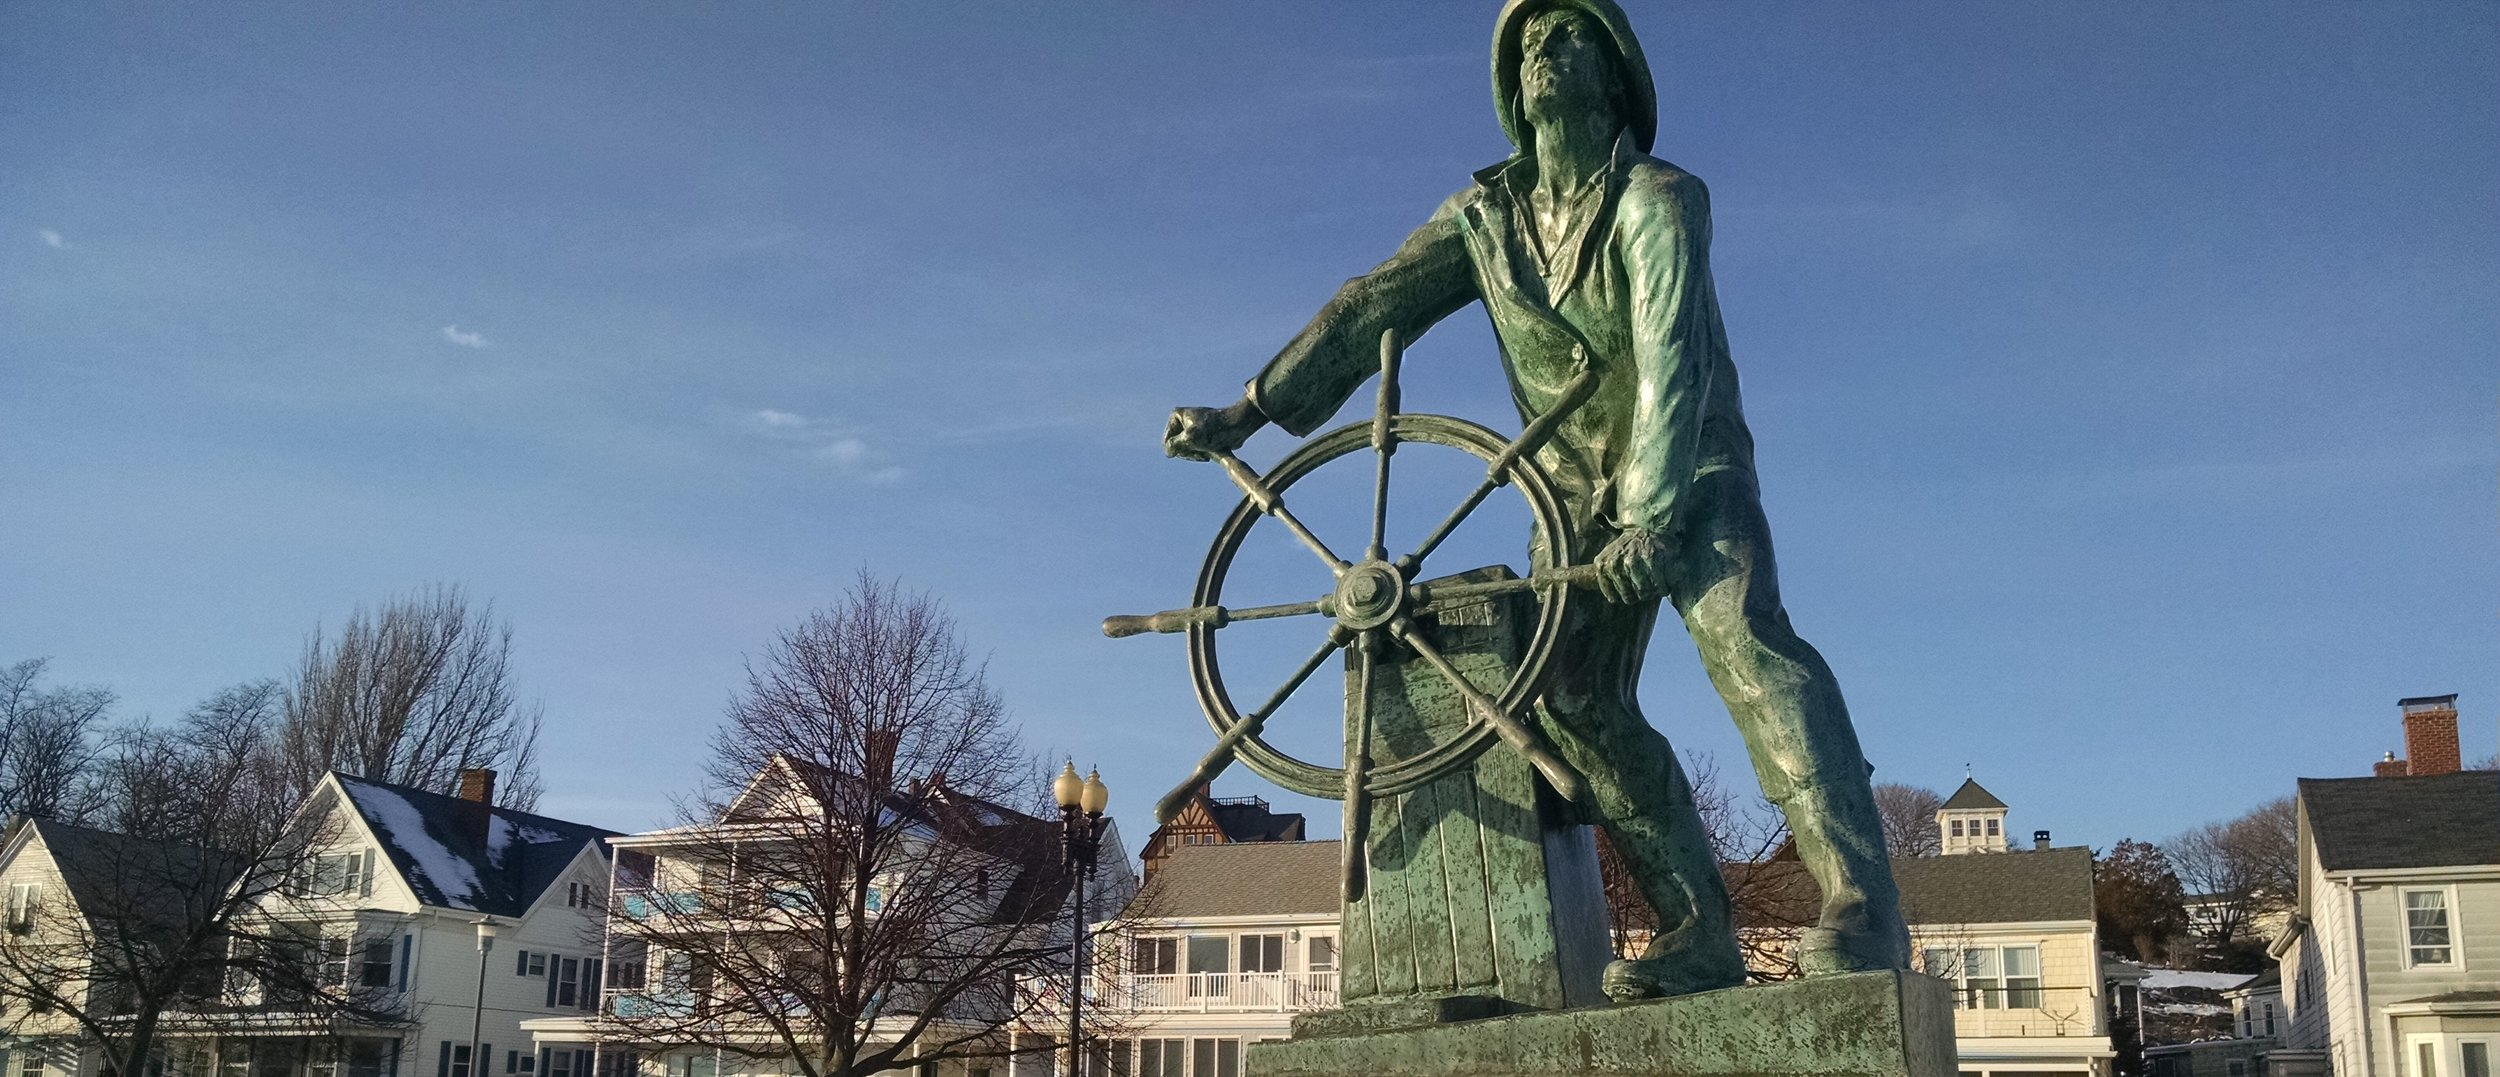 Image: A statue of a man in foul weather gear leaning into a ship's wheel and looking out into the distance. This status is in Gloucester, MA.